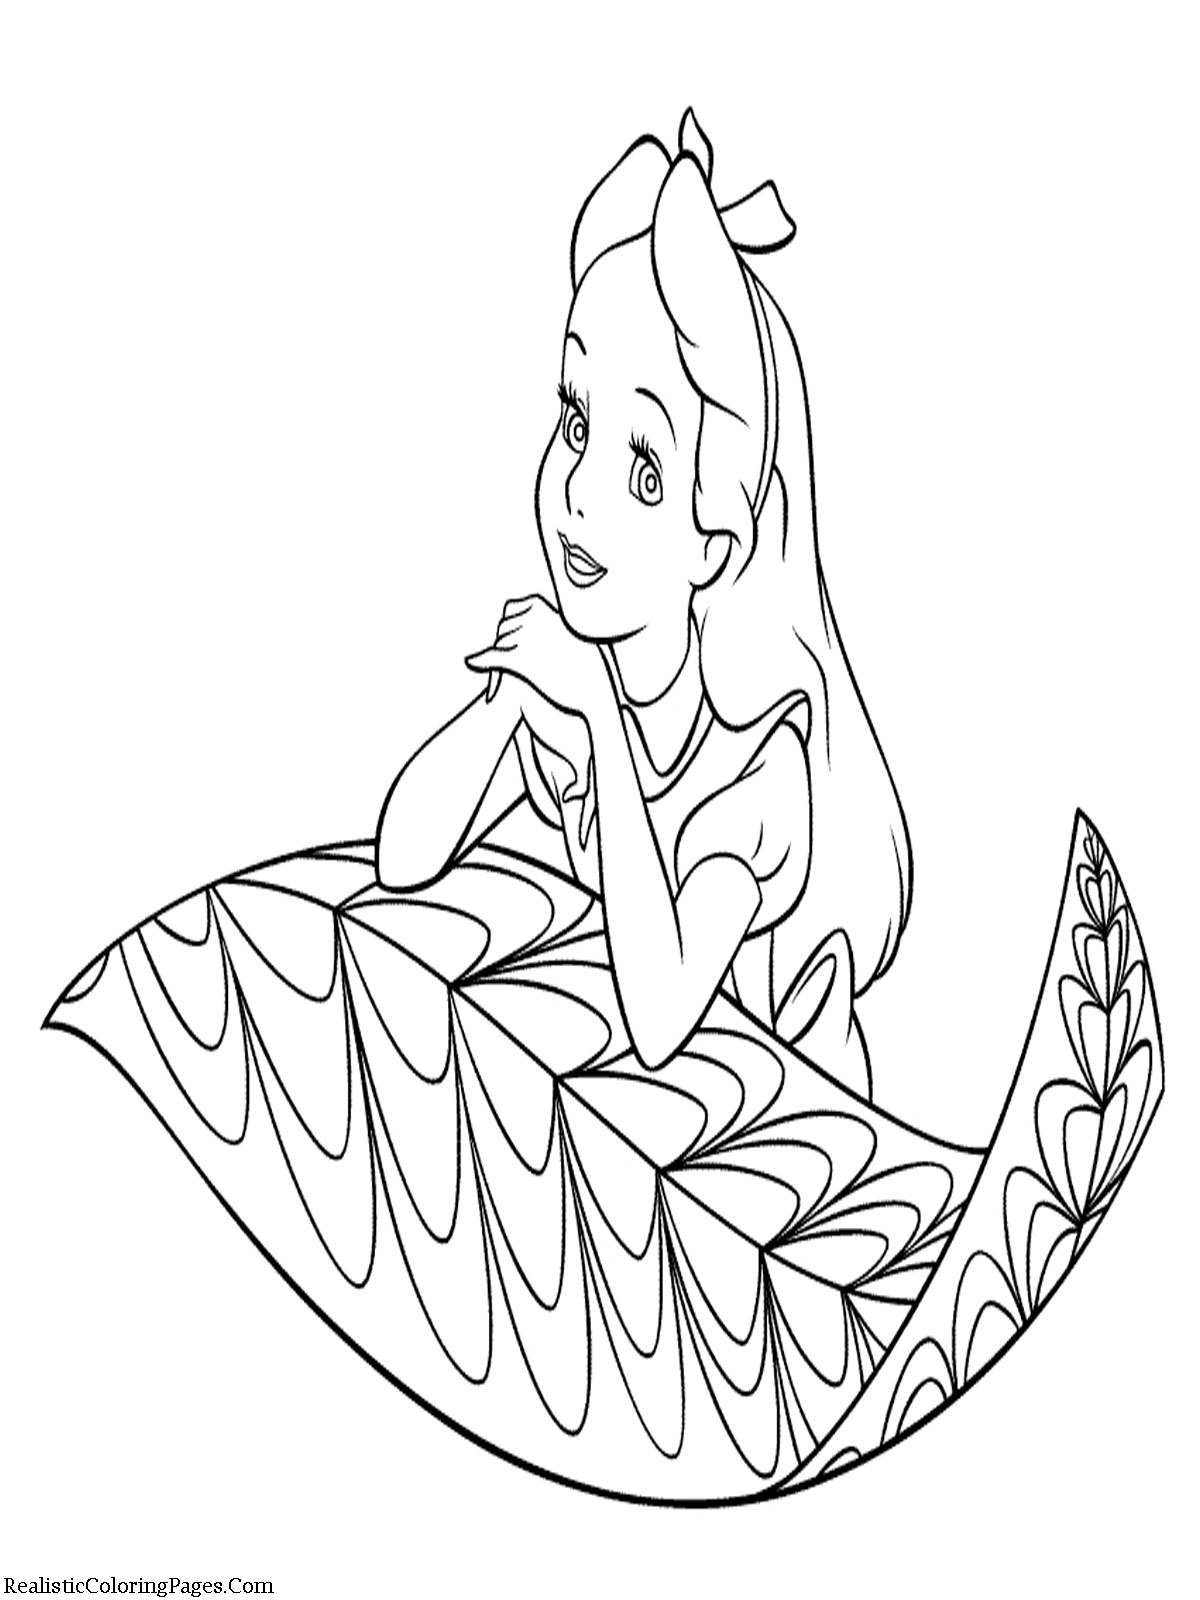 colouring pages alice in wonderland alice in wonderland coloring pages realistic coloring pages colouring wonderland alice pages in